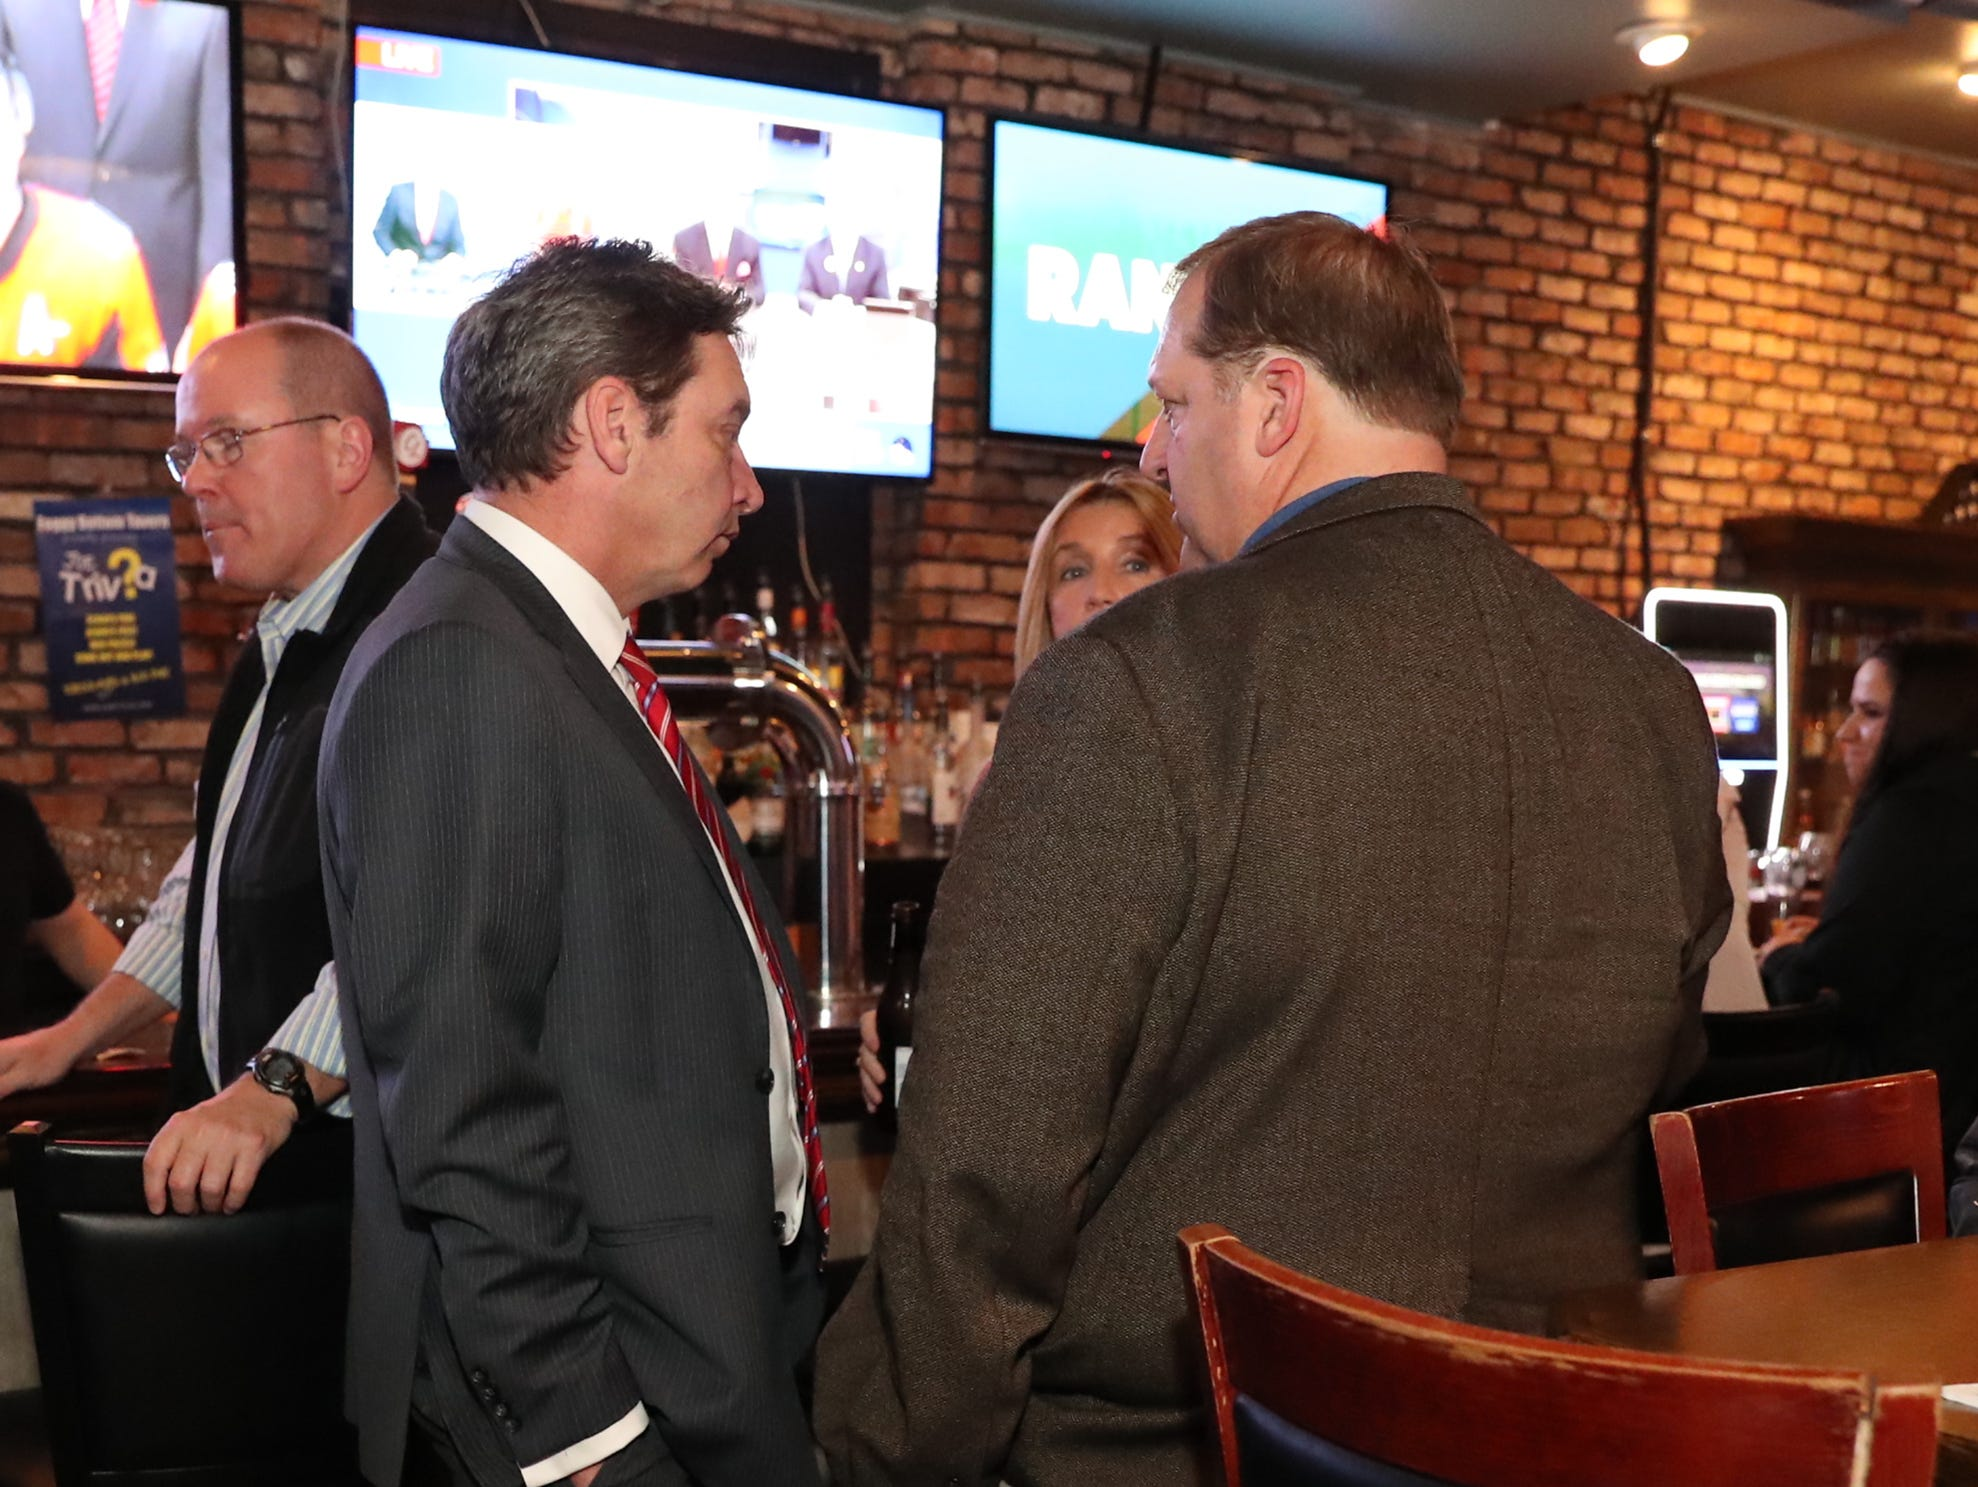 Rockland County Reublican Commitee Chairman Lawrence Garvey, left, and Clarkstown Supervisor George Hoehman meet at the Rockland Republican Commitee's election night gathering at Foggy Bottom Tavern in New City on Tuesday, November 6, 2018.